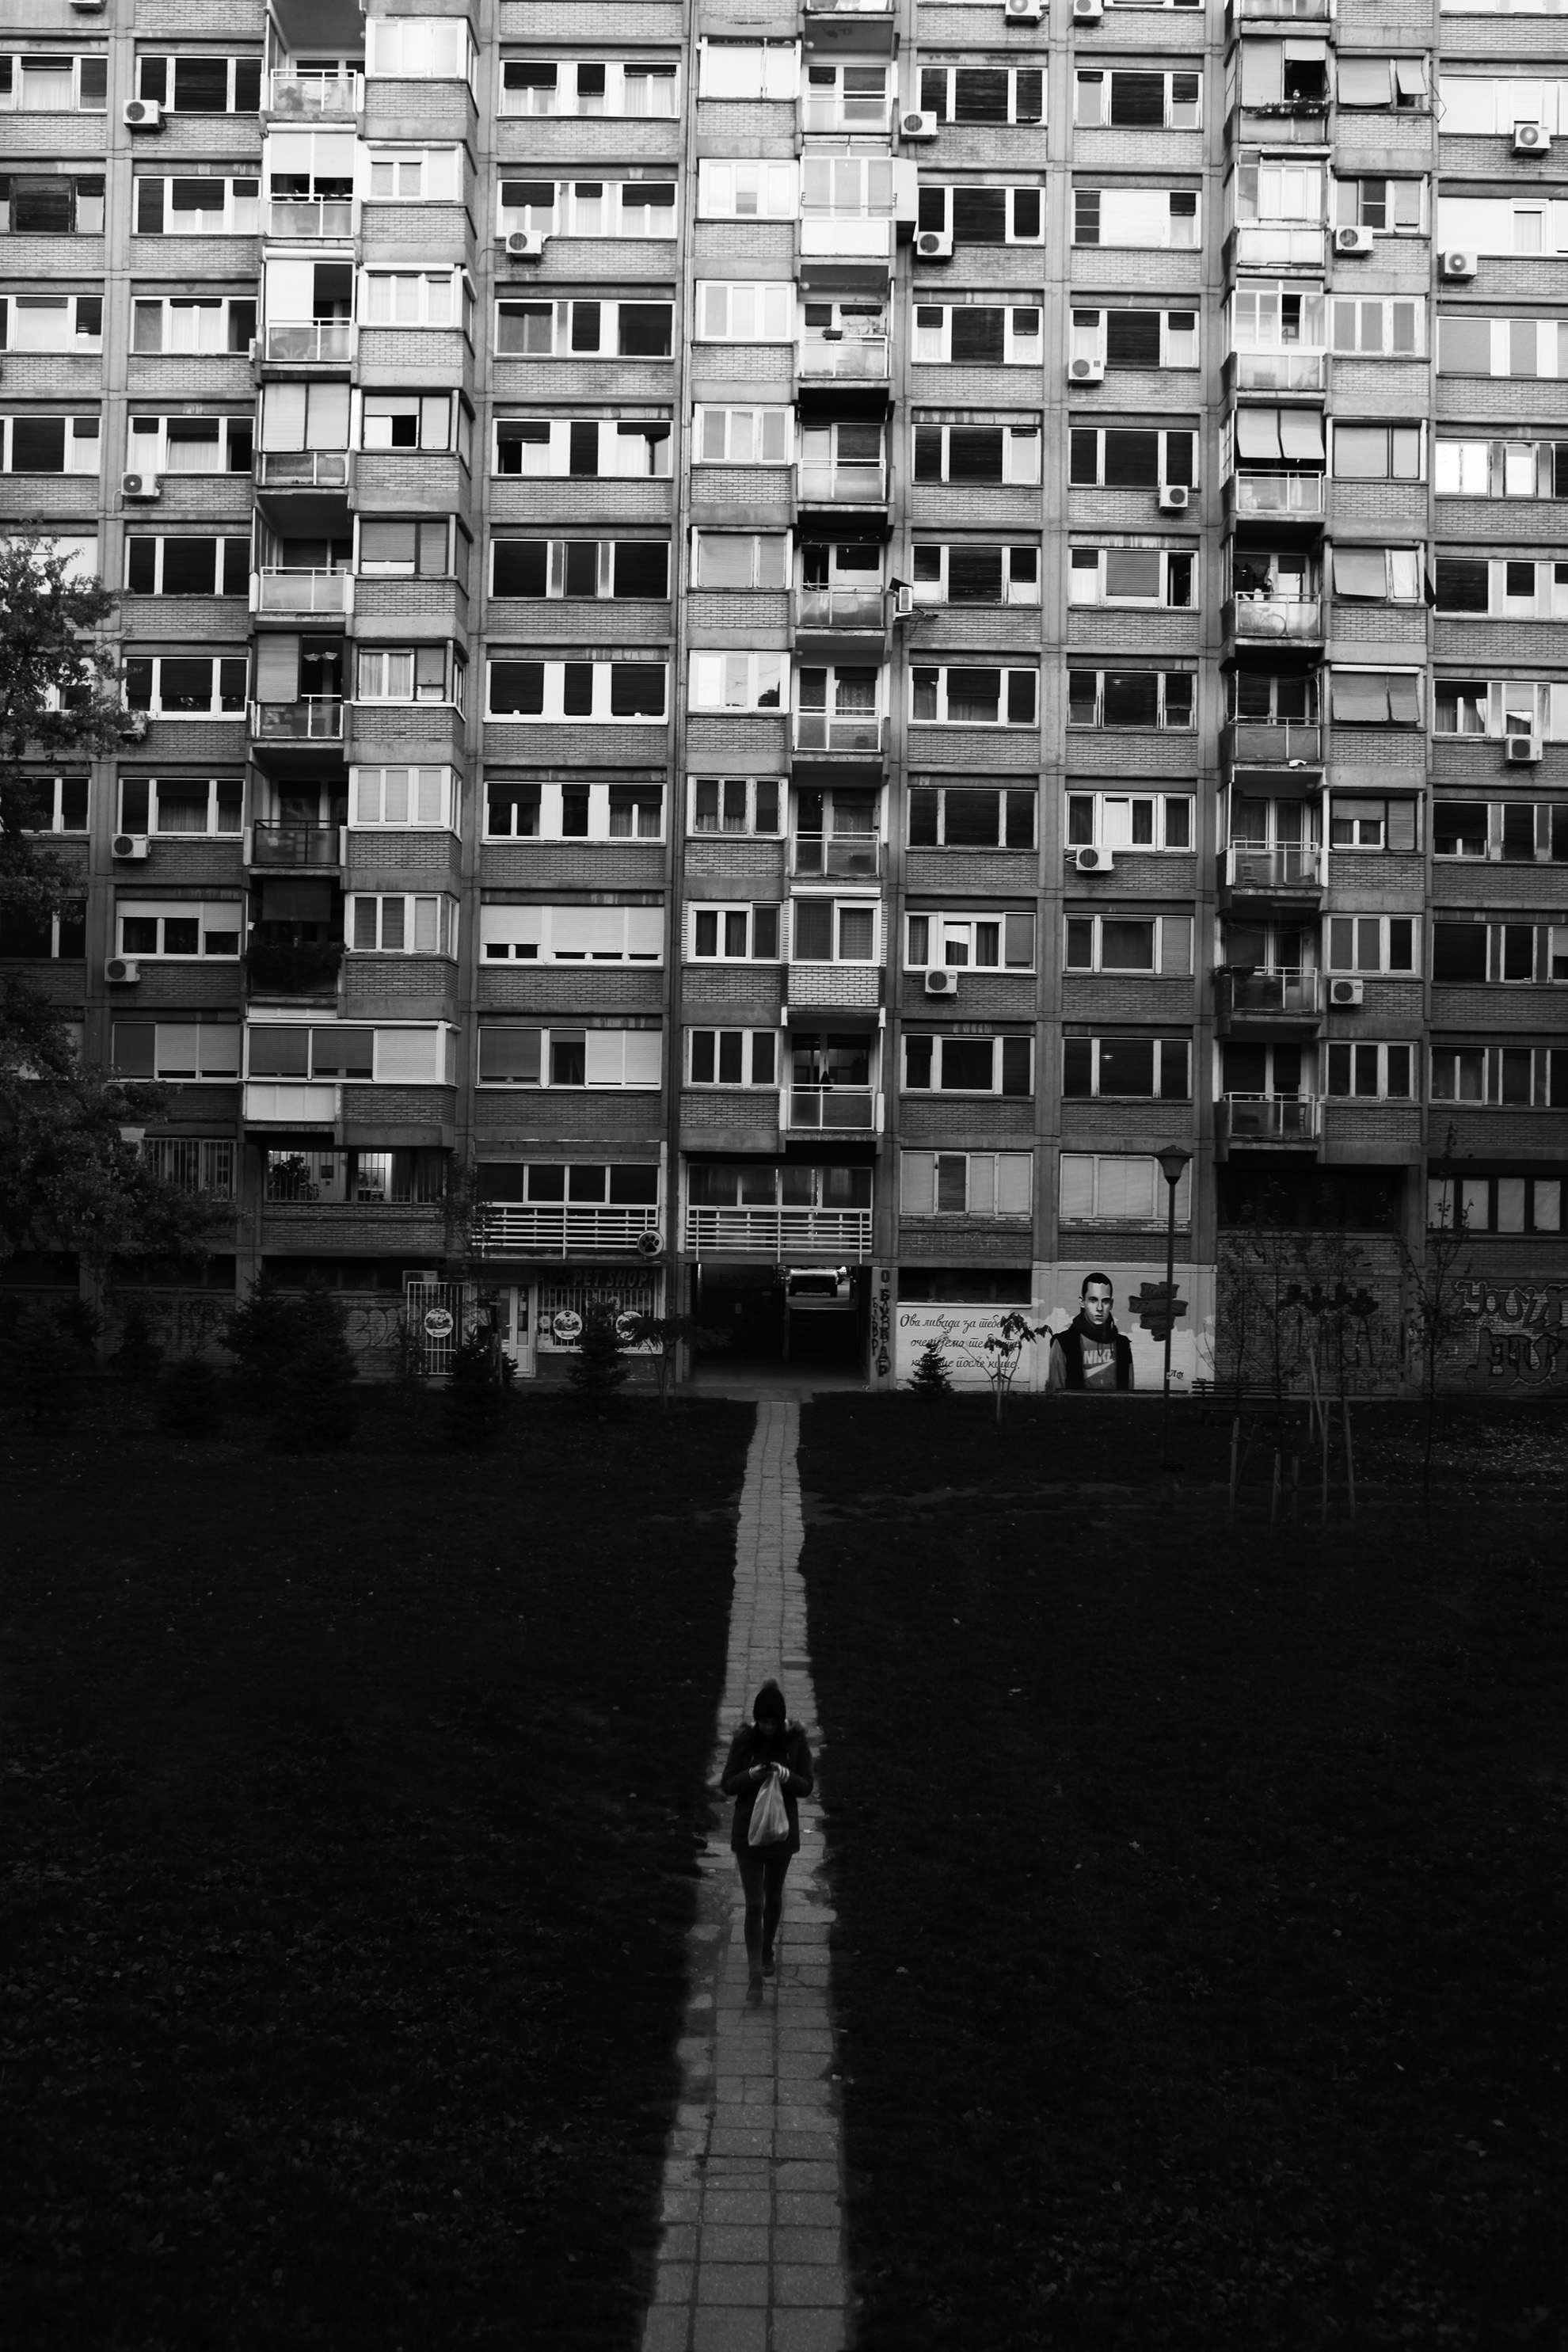 Yiorgos Assimakopoulos, Serbia - Bosnia and Herzegovina, common routes, project, photography